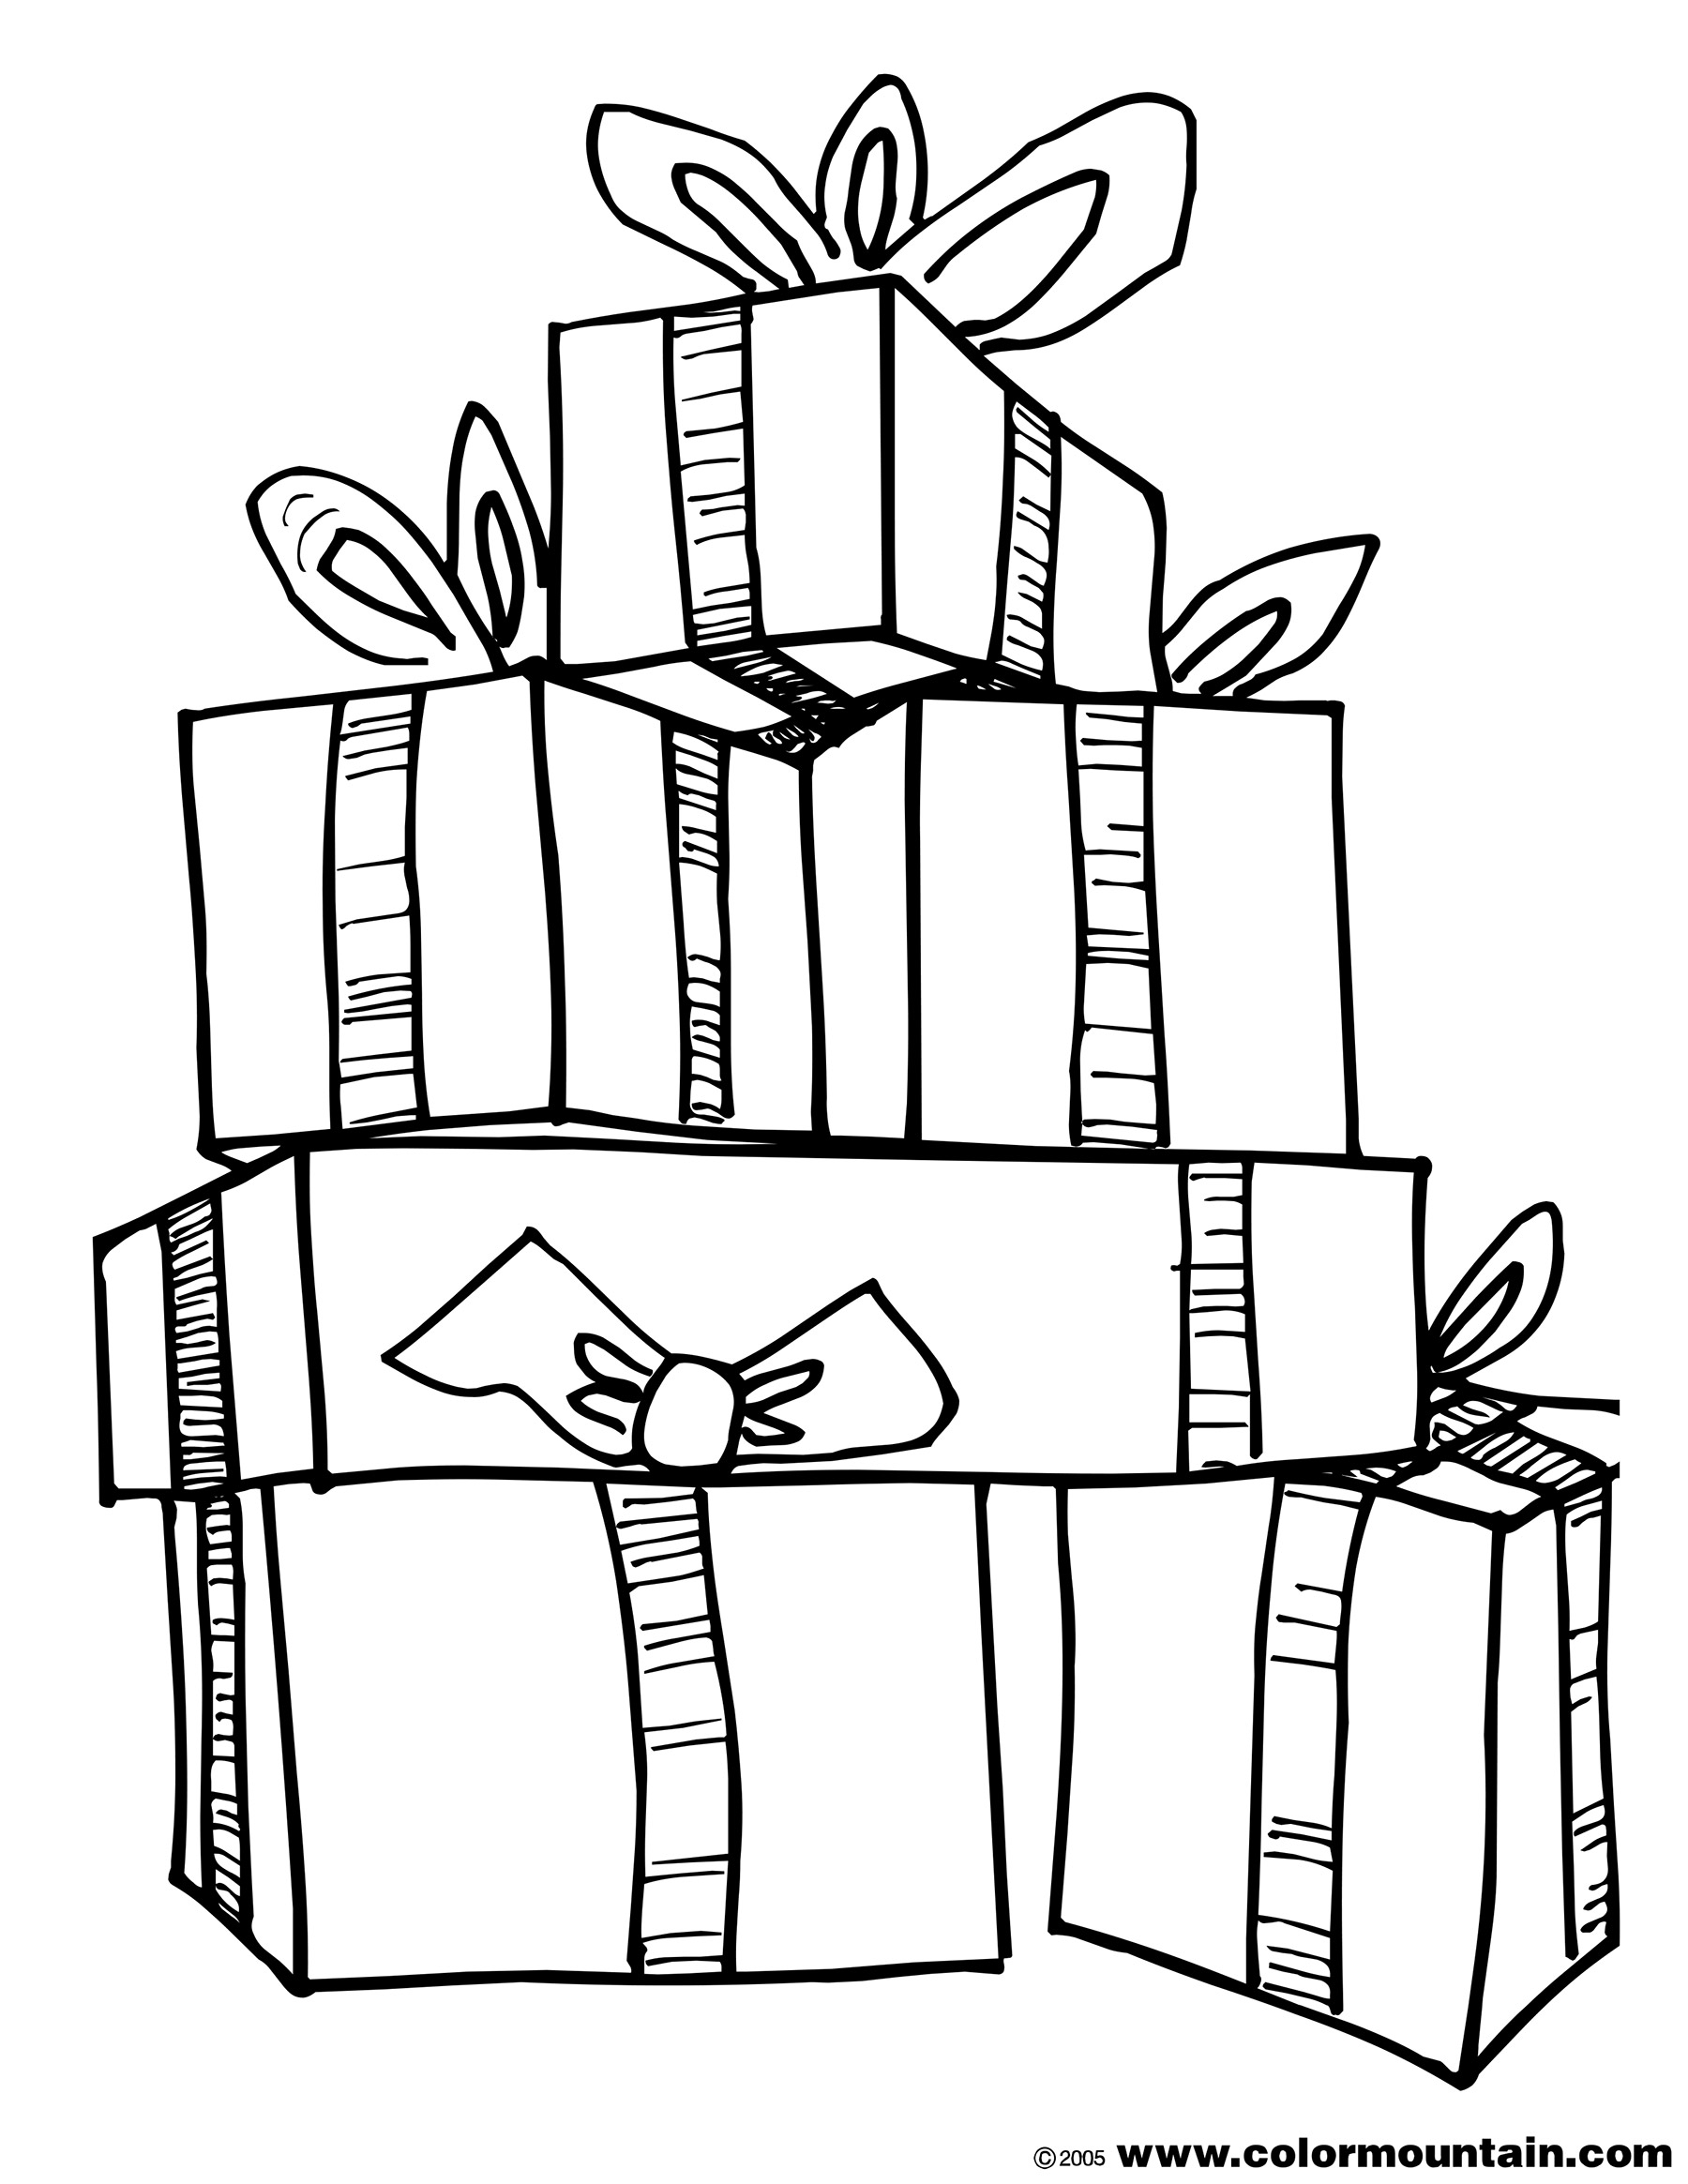 Present Coloring Page - Download Coloring Pages Present Coloring Page Present